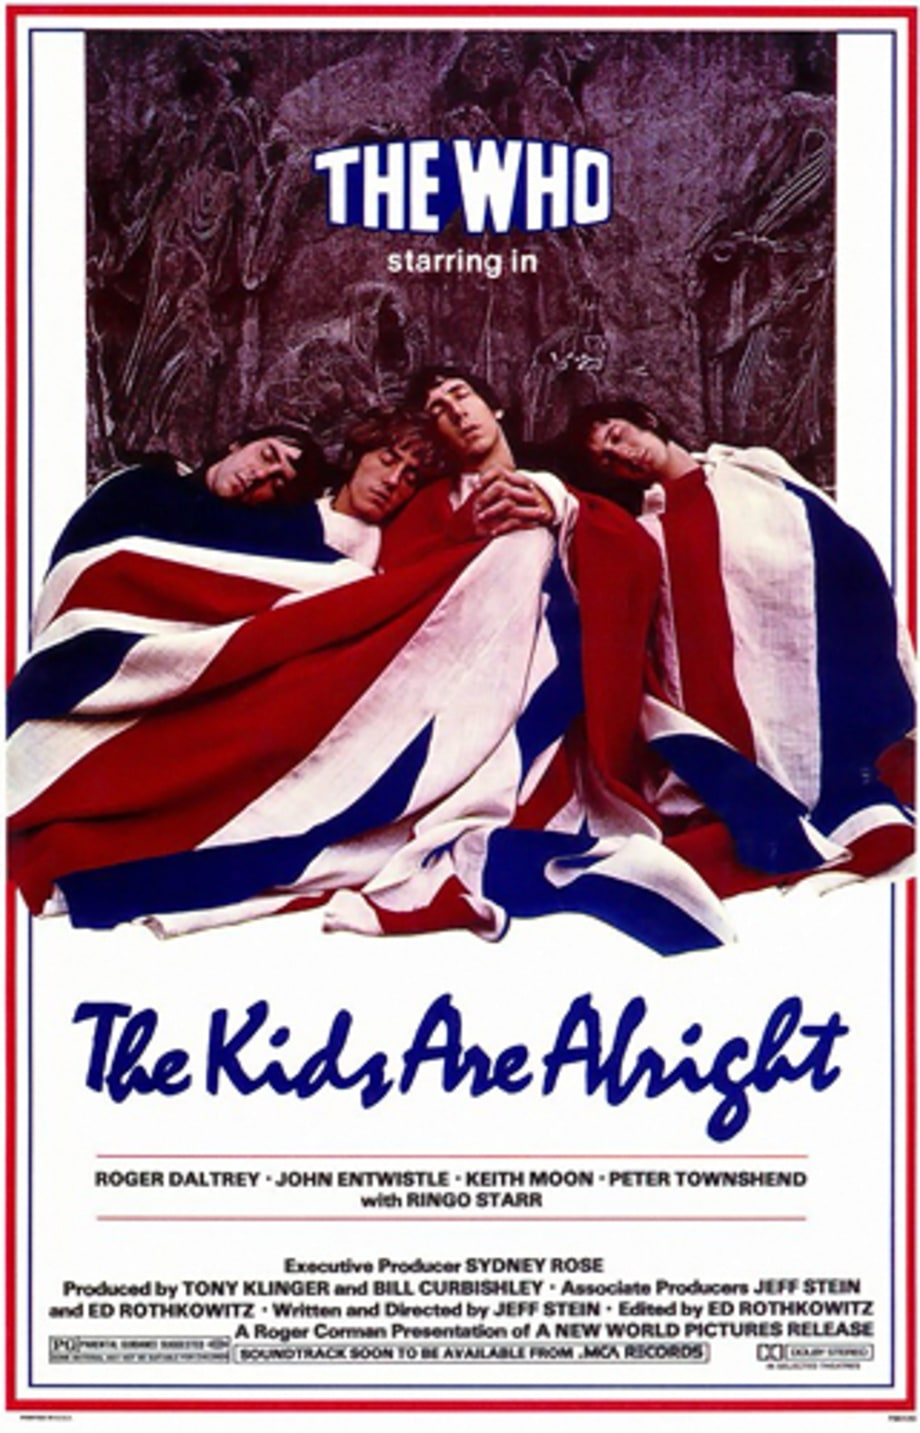 5. 'The Kids Are Alright'